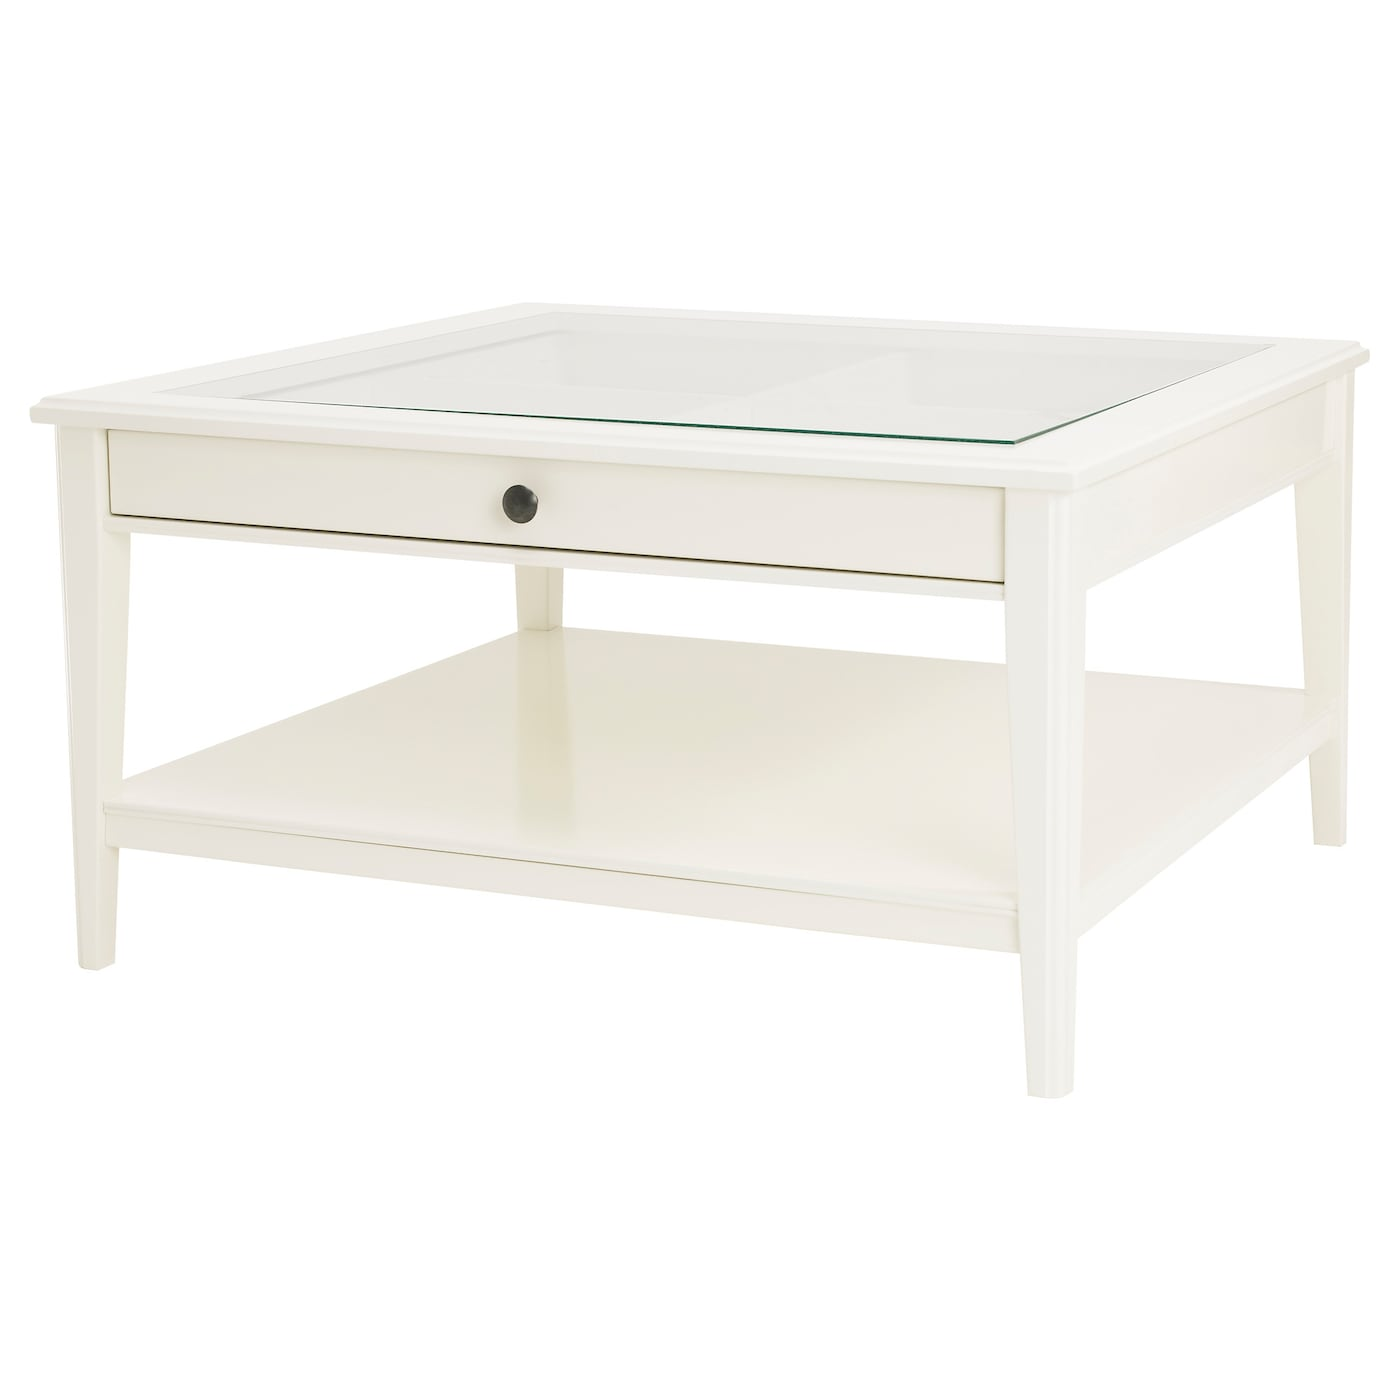 Liatorp coffee table white glass 93x93 cm ikea - Ikea table basse noir ...